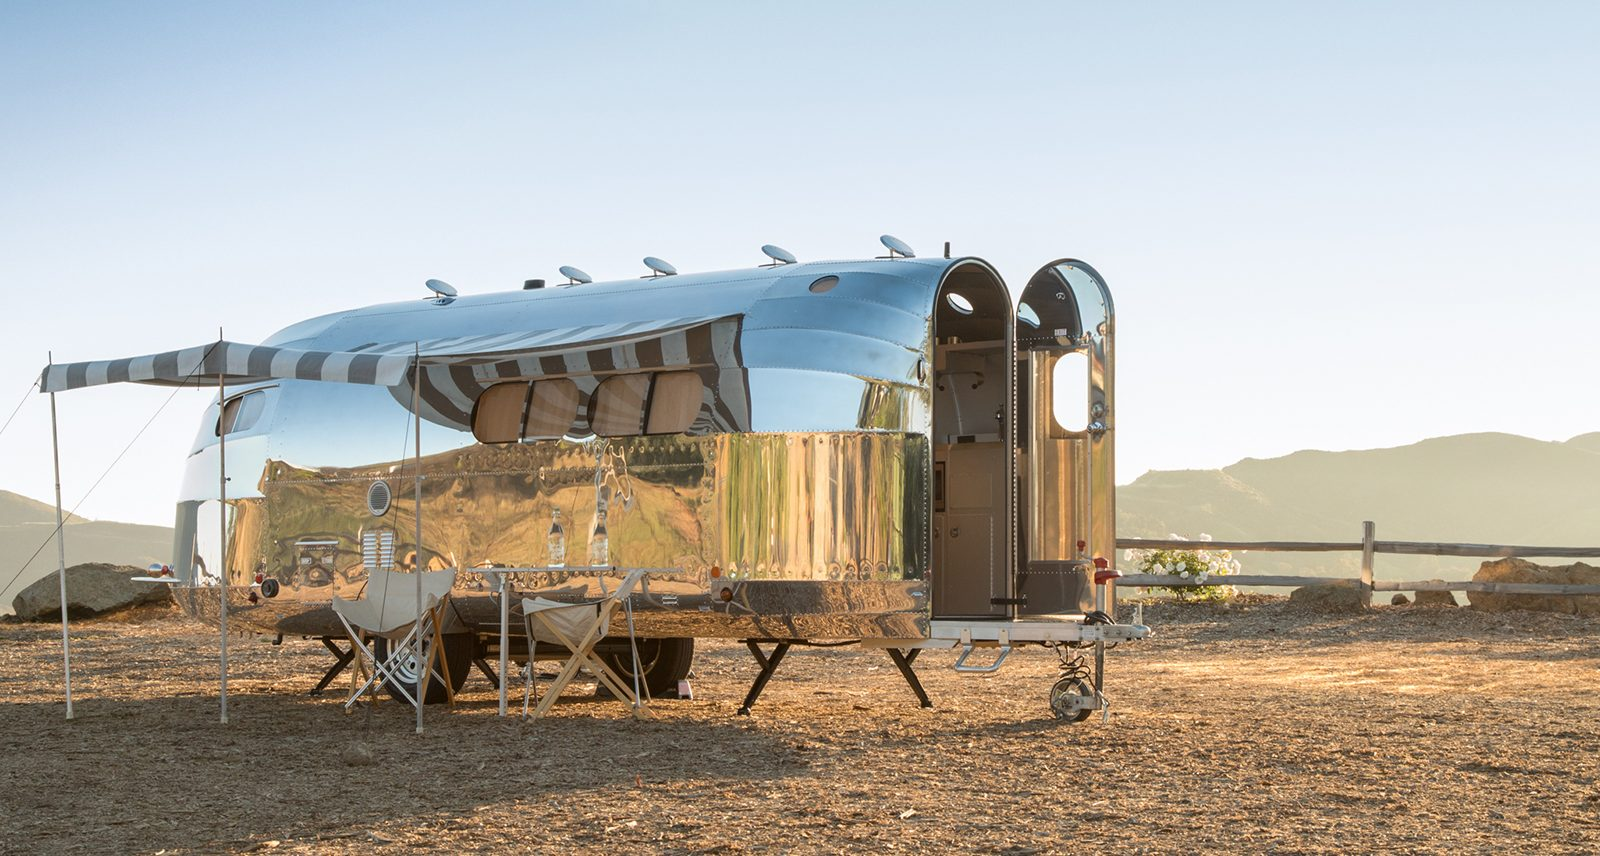 The Bowlus Road Chief Endless Highways Trailer Is the Solution to Your Summer Travel Plans